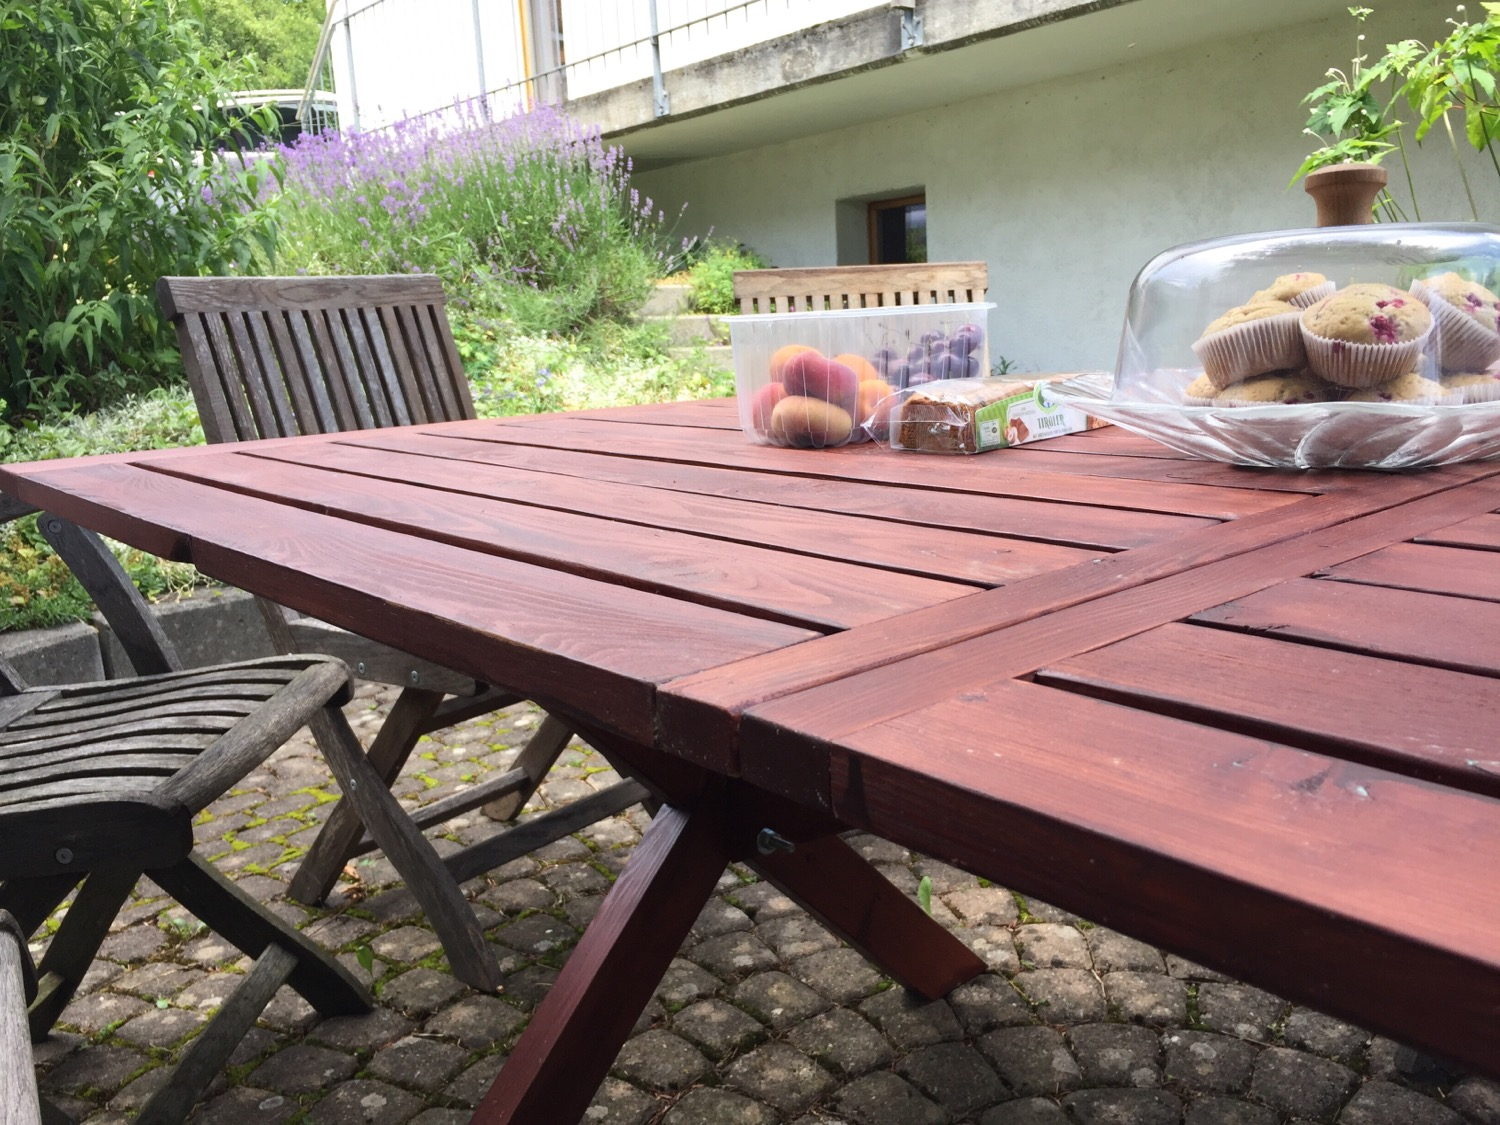 The table after being outside for nearly a year.